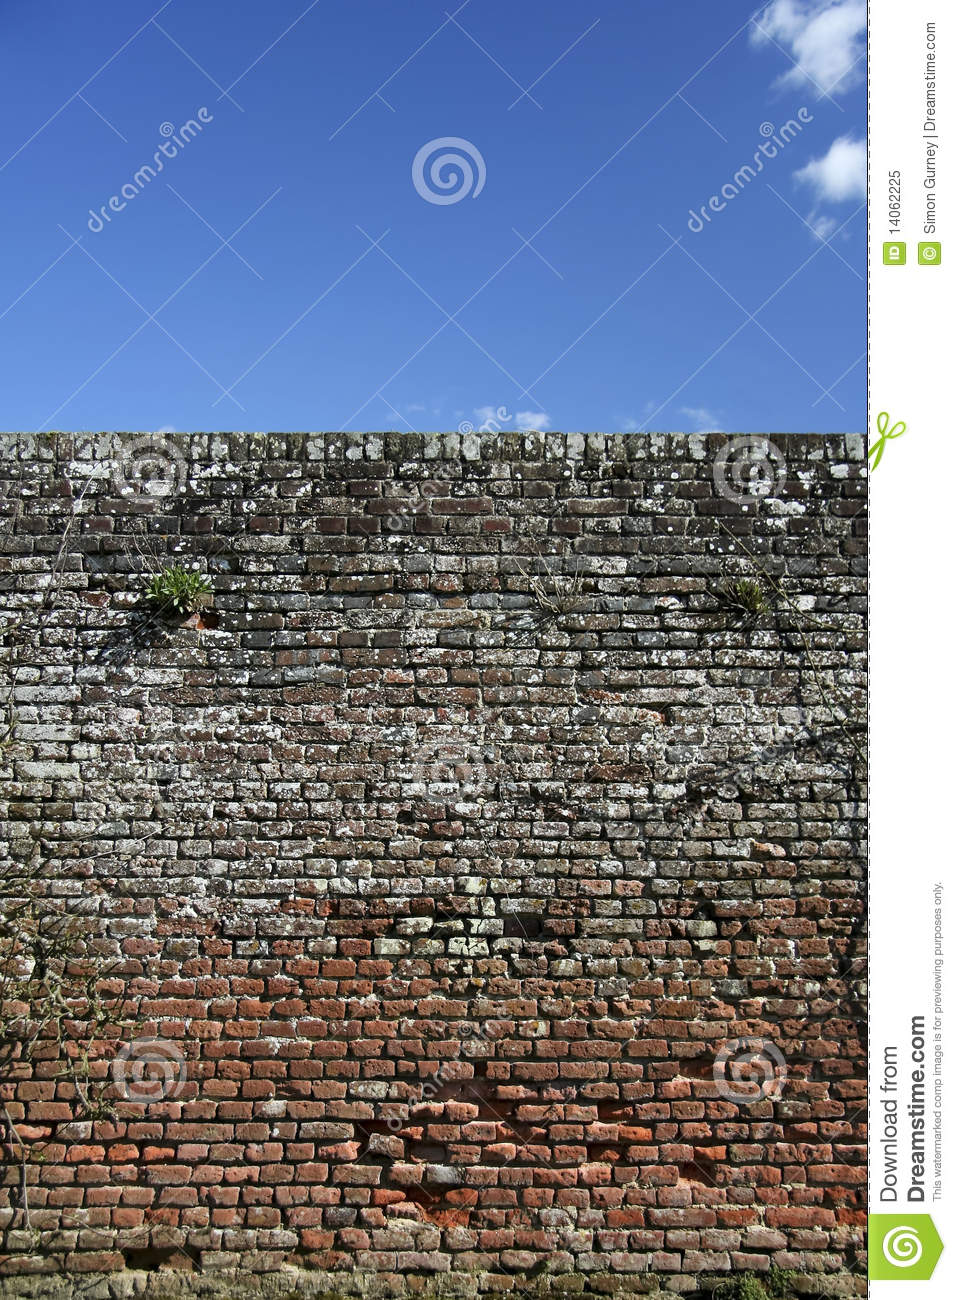 High Old Brick Wall Blue Sky Background Royalty Free Stock